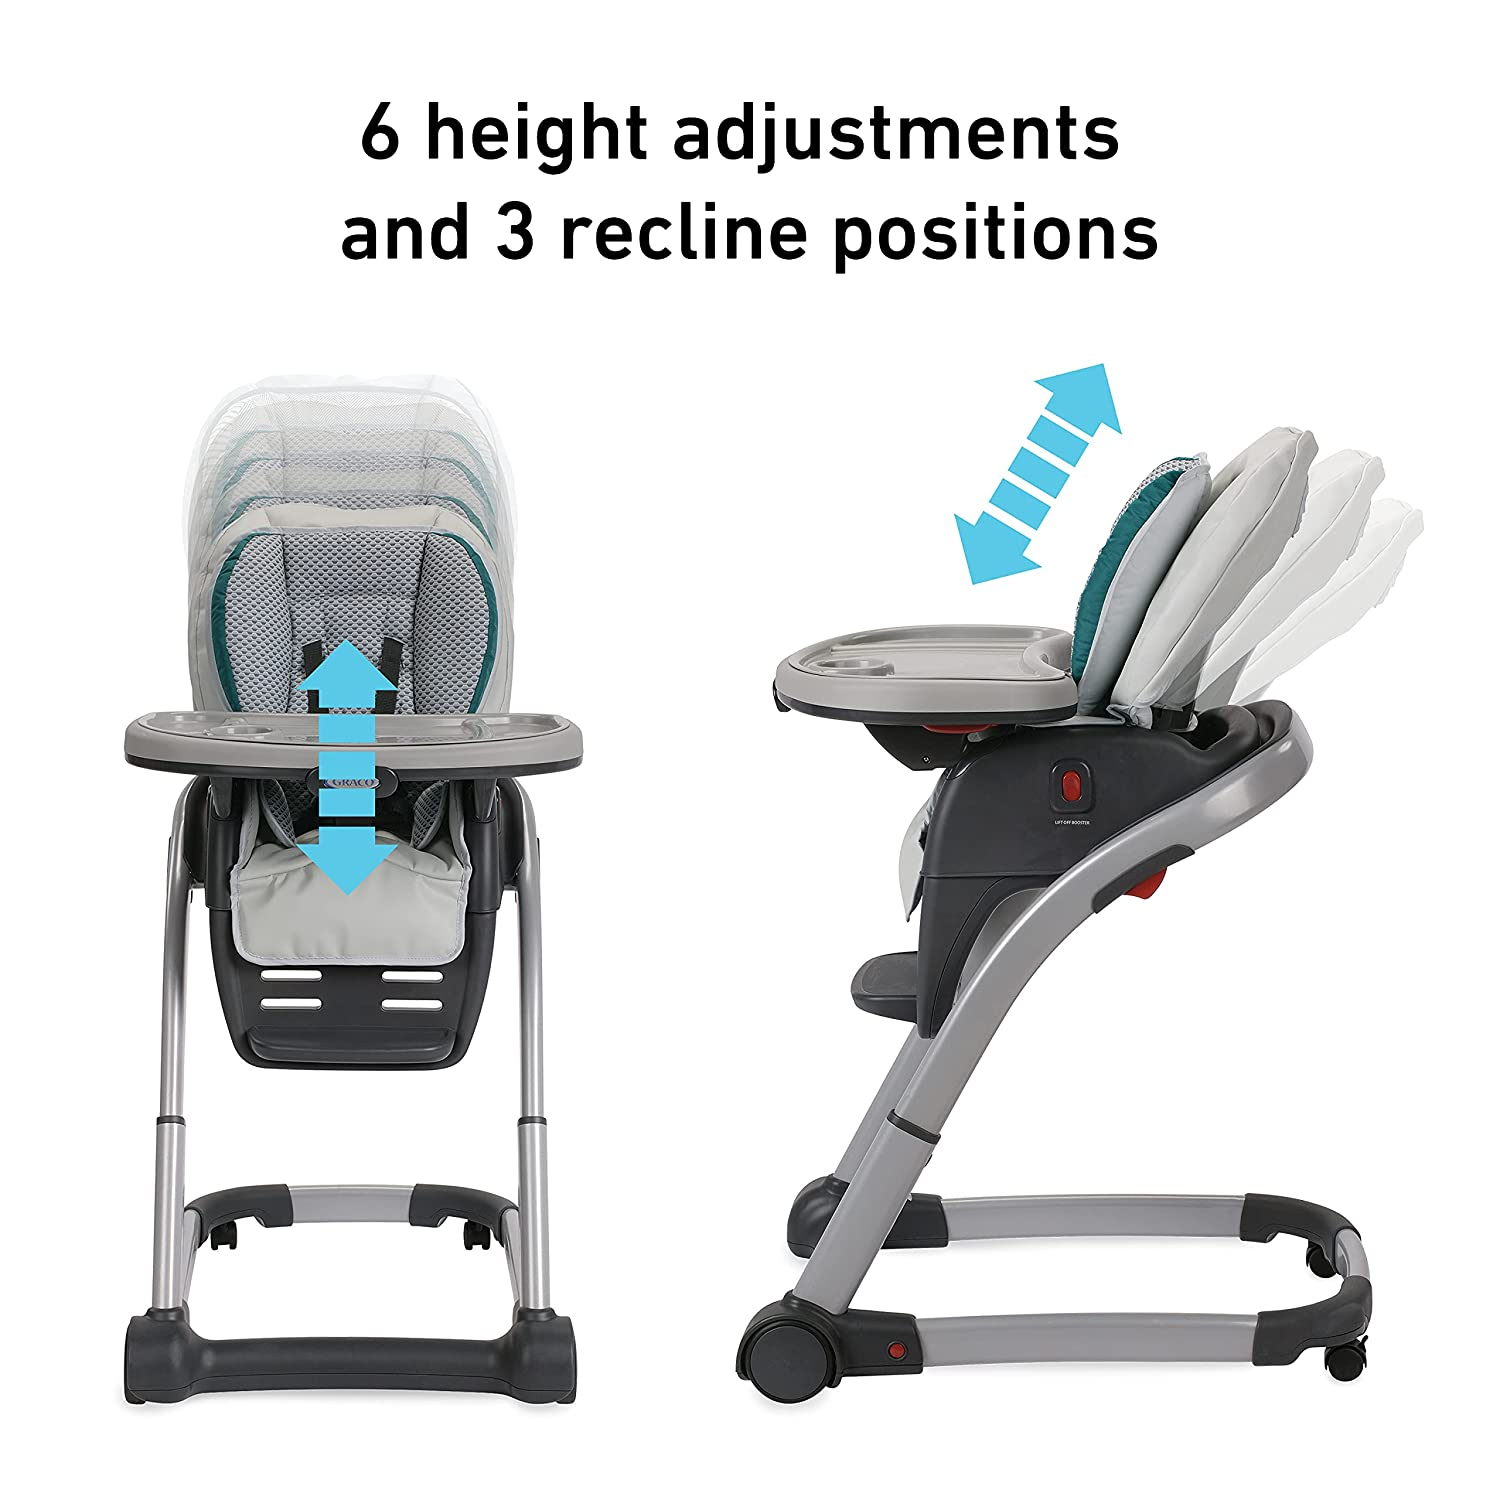 seat adjustment Graco Blossom 6 in 1 High Chair Reviews